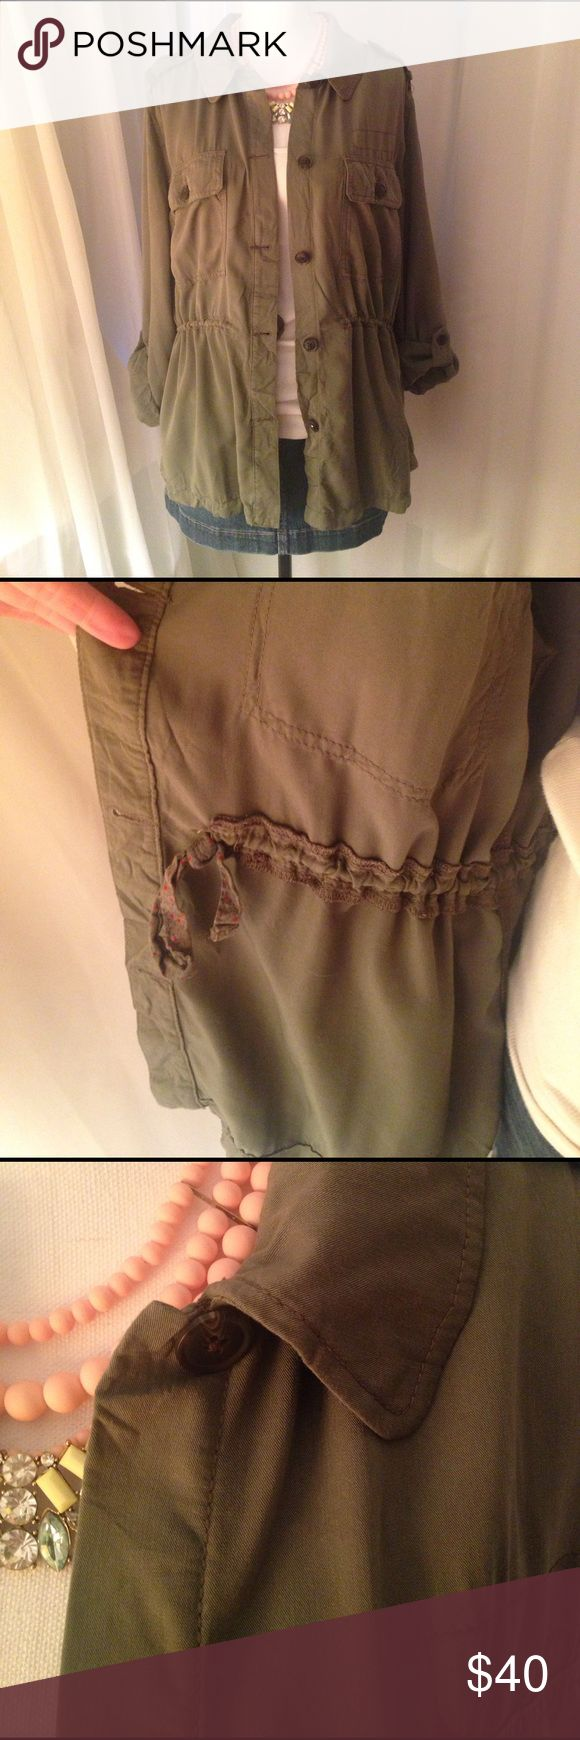 Military jacket Beautiful and lightweight! Olive green military jacket cinches at the waist to make it adjustable. Sleeves roll with epilets. 2 front pockets. Button down. Rayon/Poly blend. American Eagle Outfitters Jackets & Coats